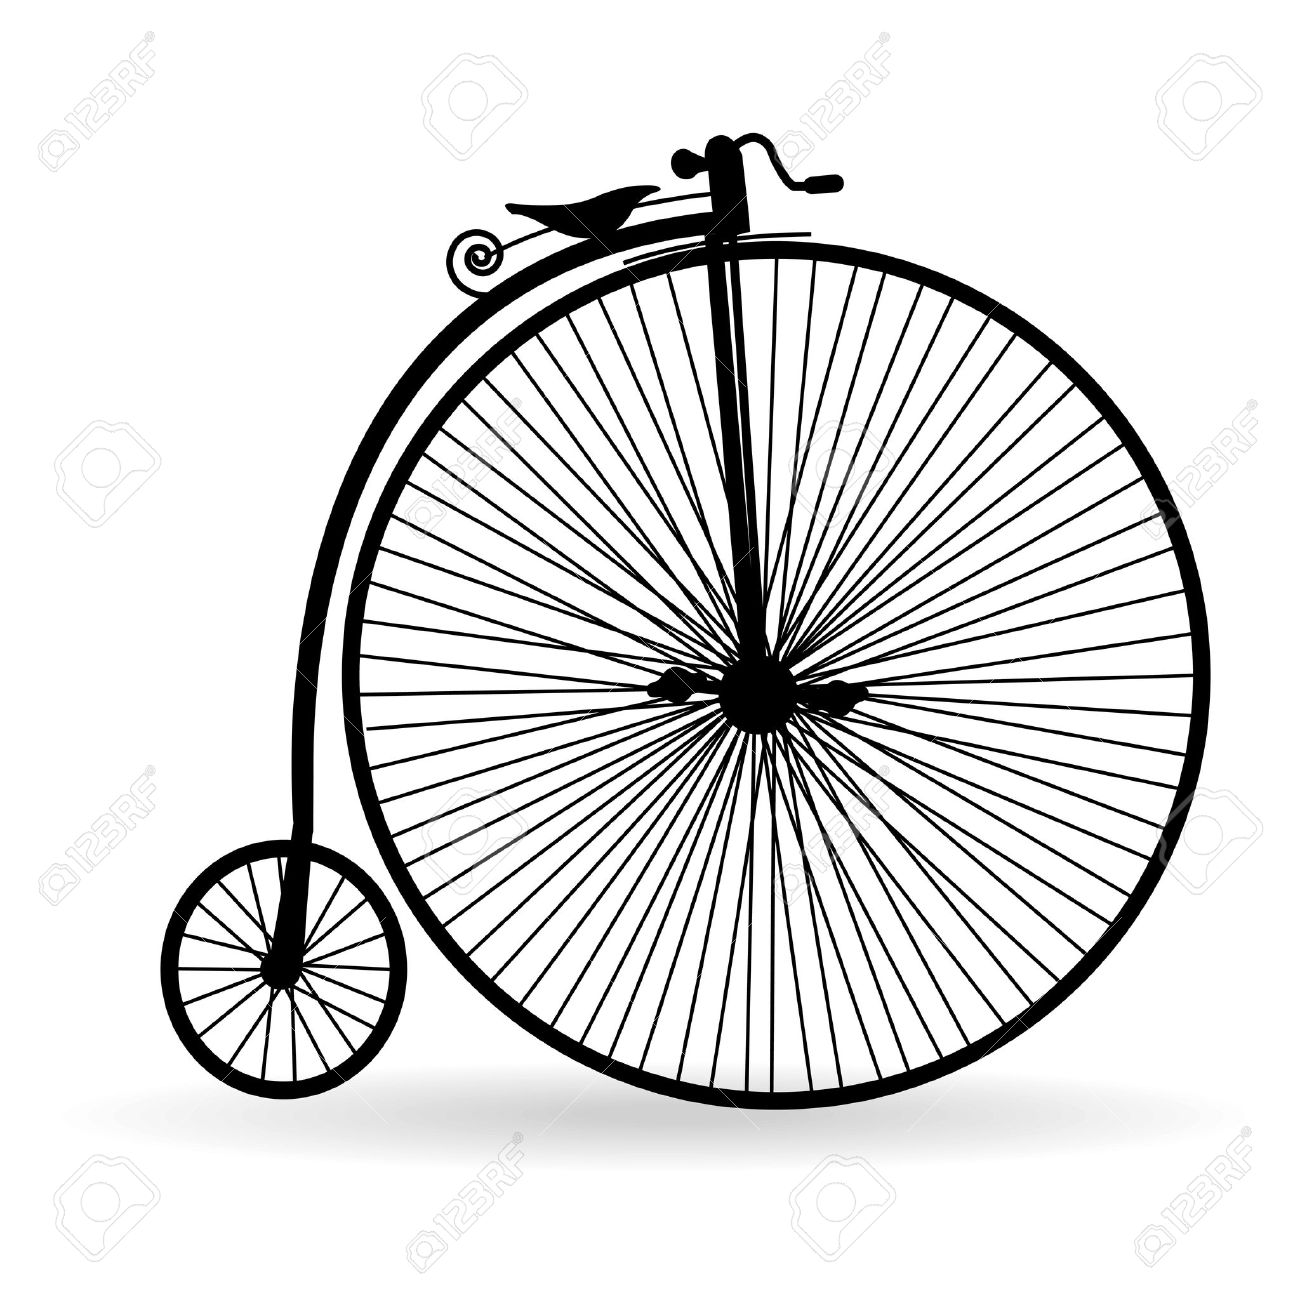 Silhouette of an ancient bicycle on a white background Stock Vector - 10763667